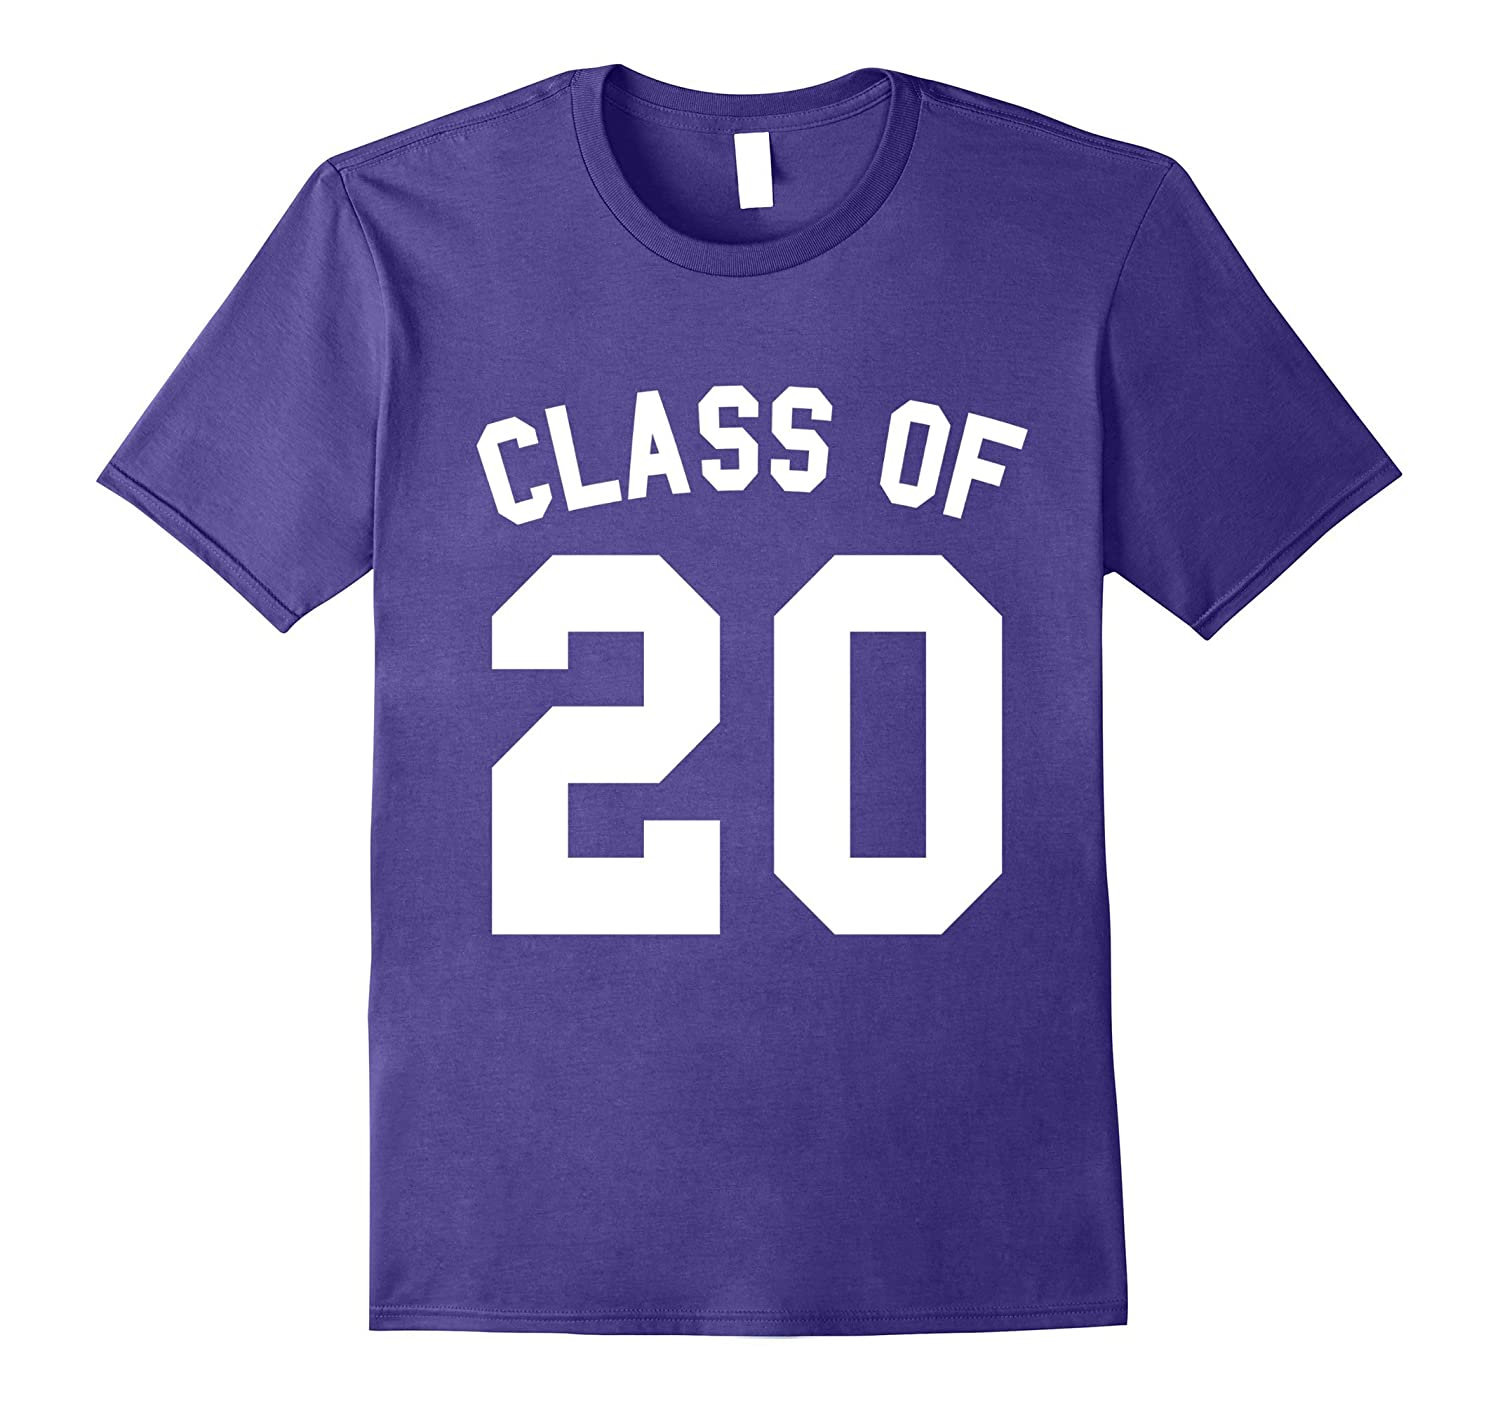 Class of 2020 Shirts for Seniors Graduation Gifts Ideas